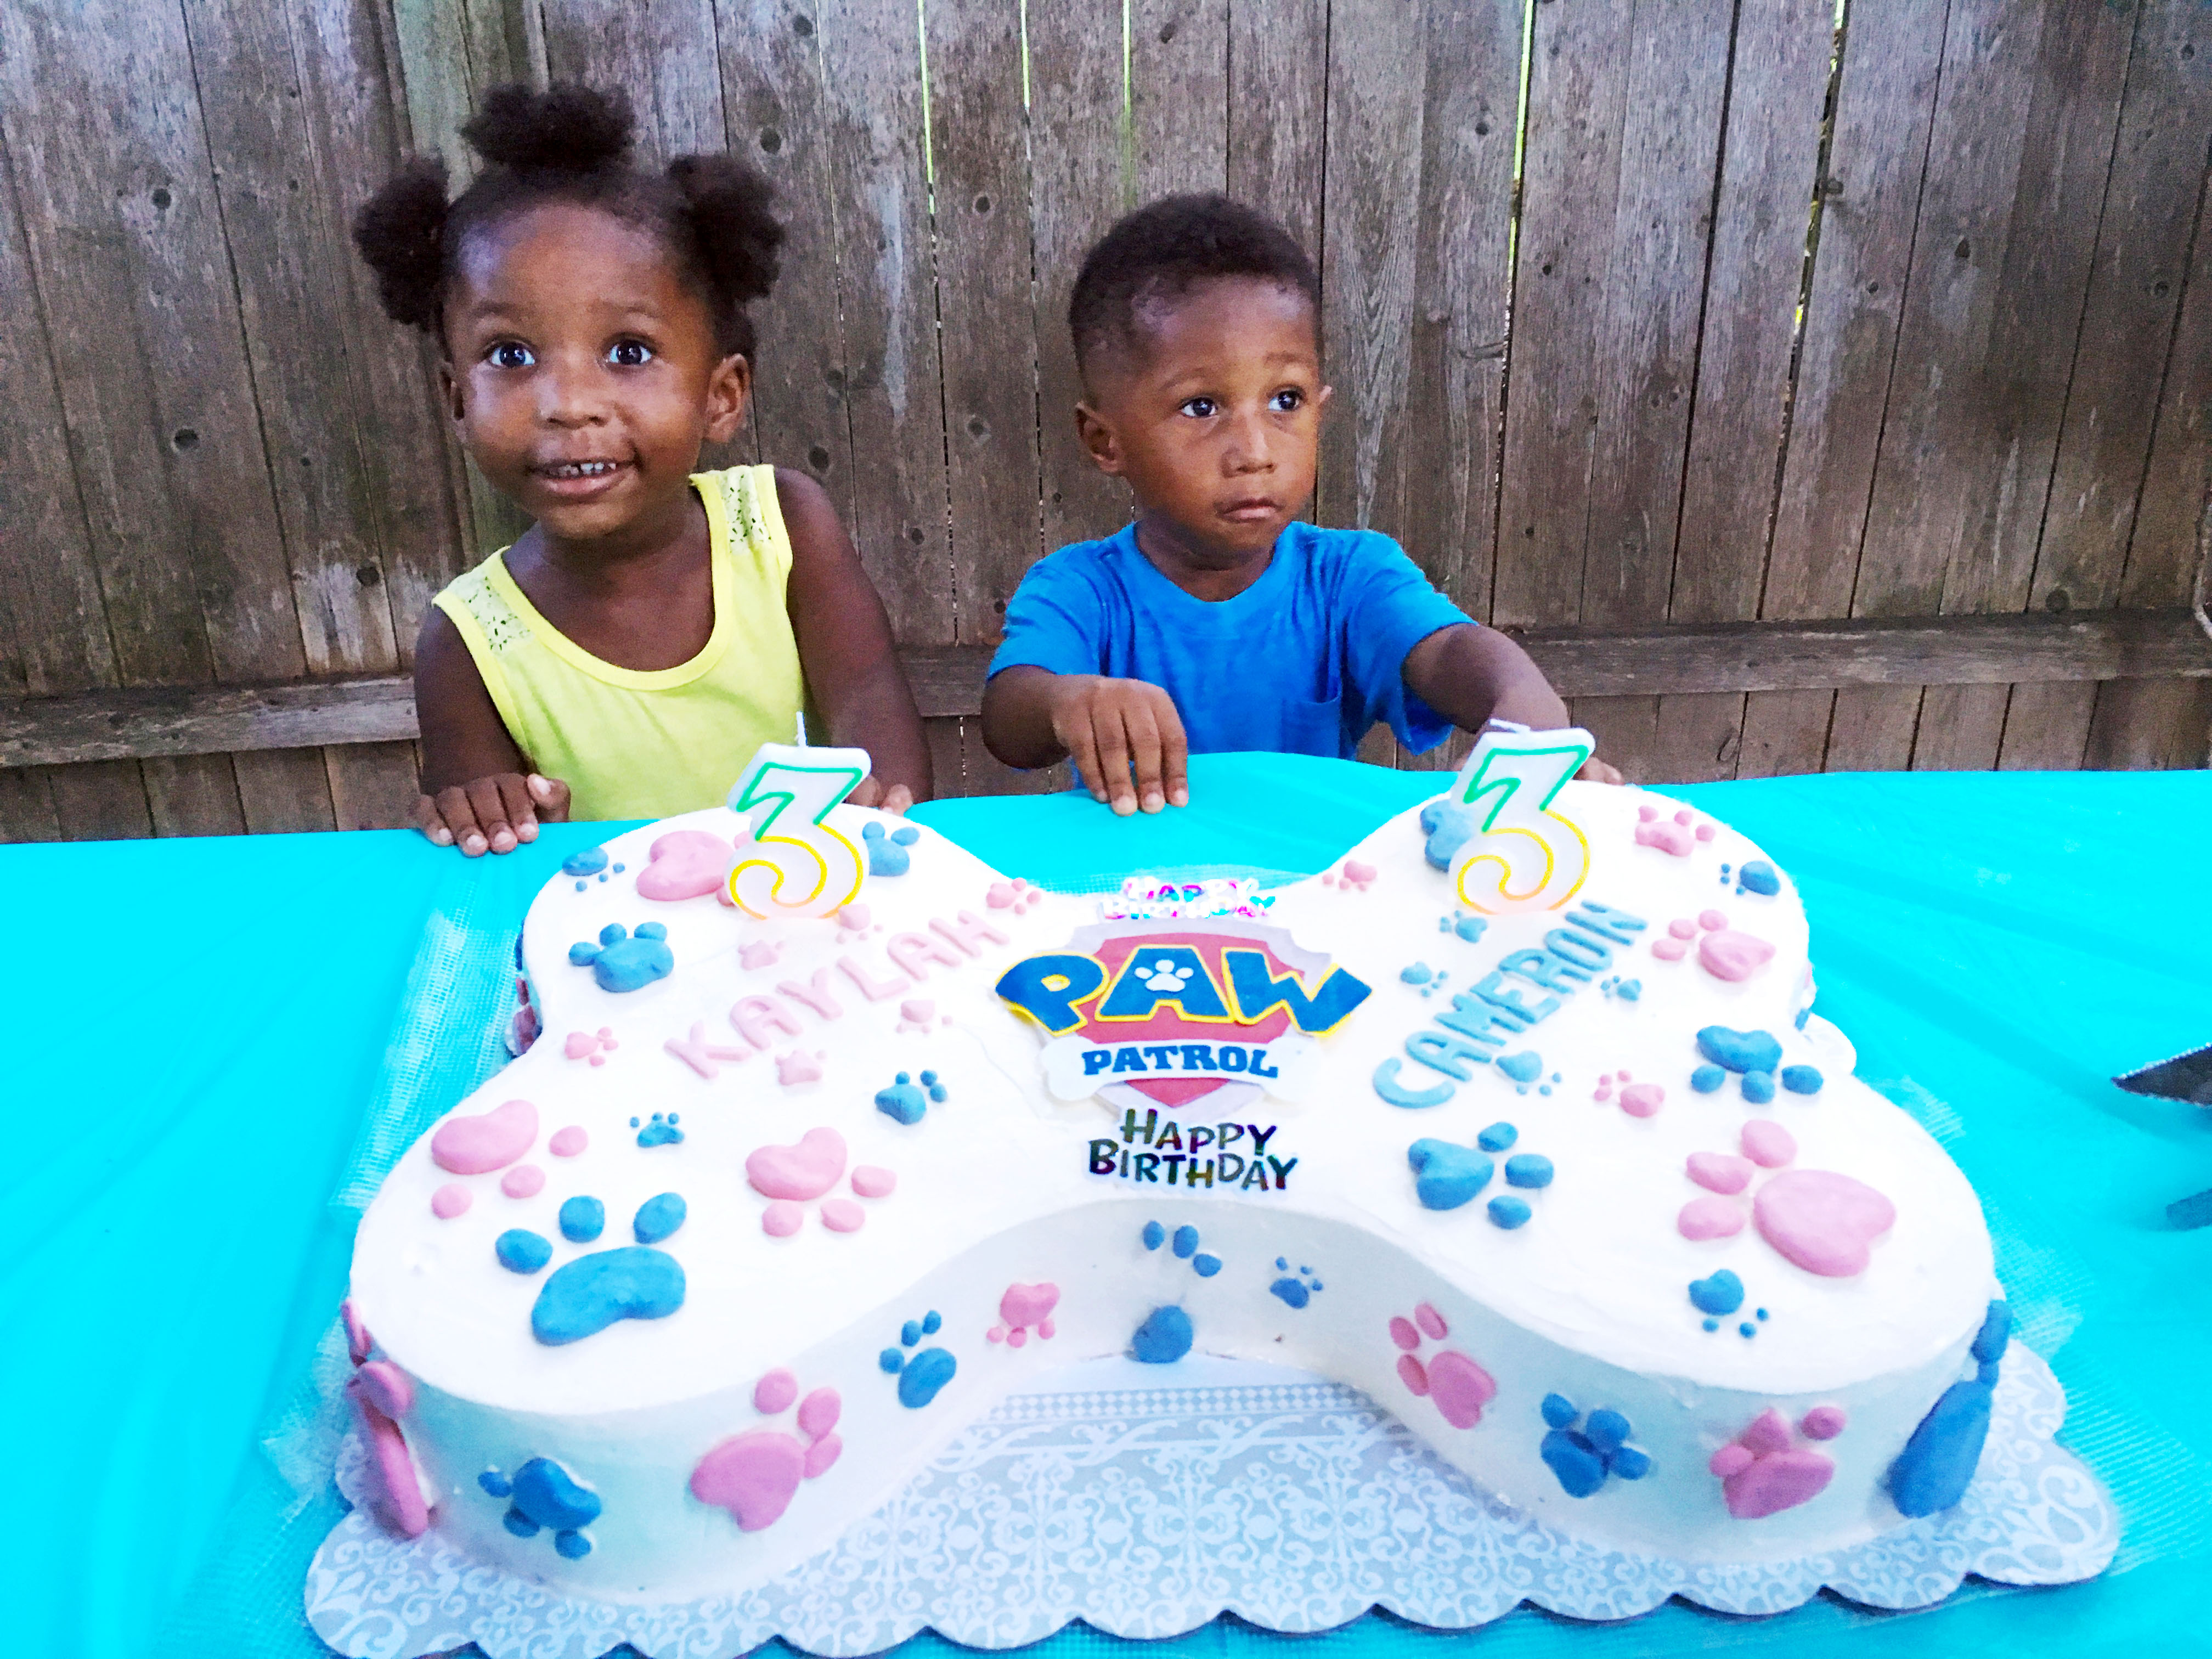 Paw Patrol Cake A How To Guide The Busy Spatula